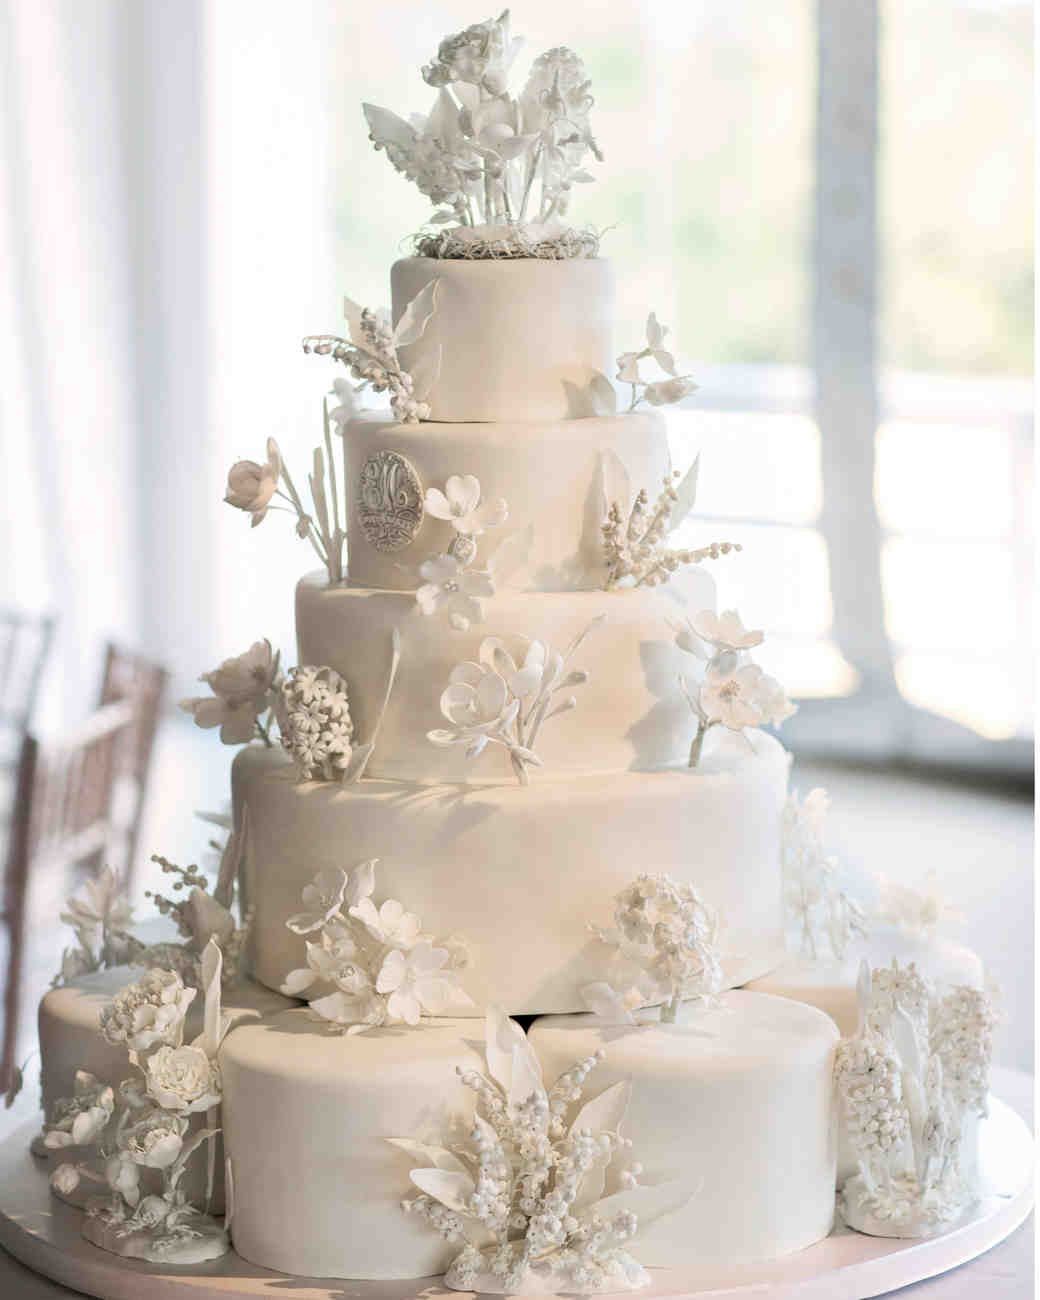 Five-Tiered White Wedding Cake with 3D Edible Hand-Crafted Flowers